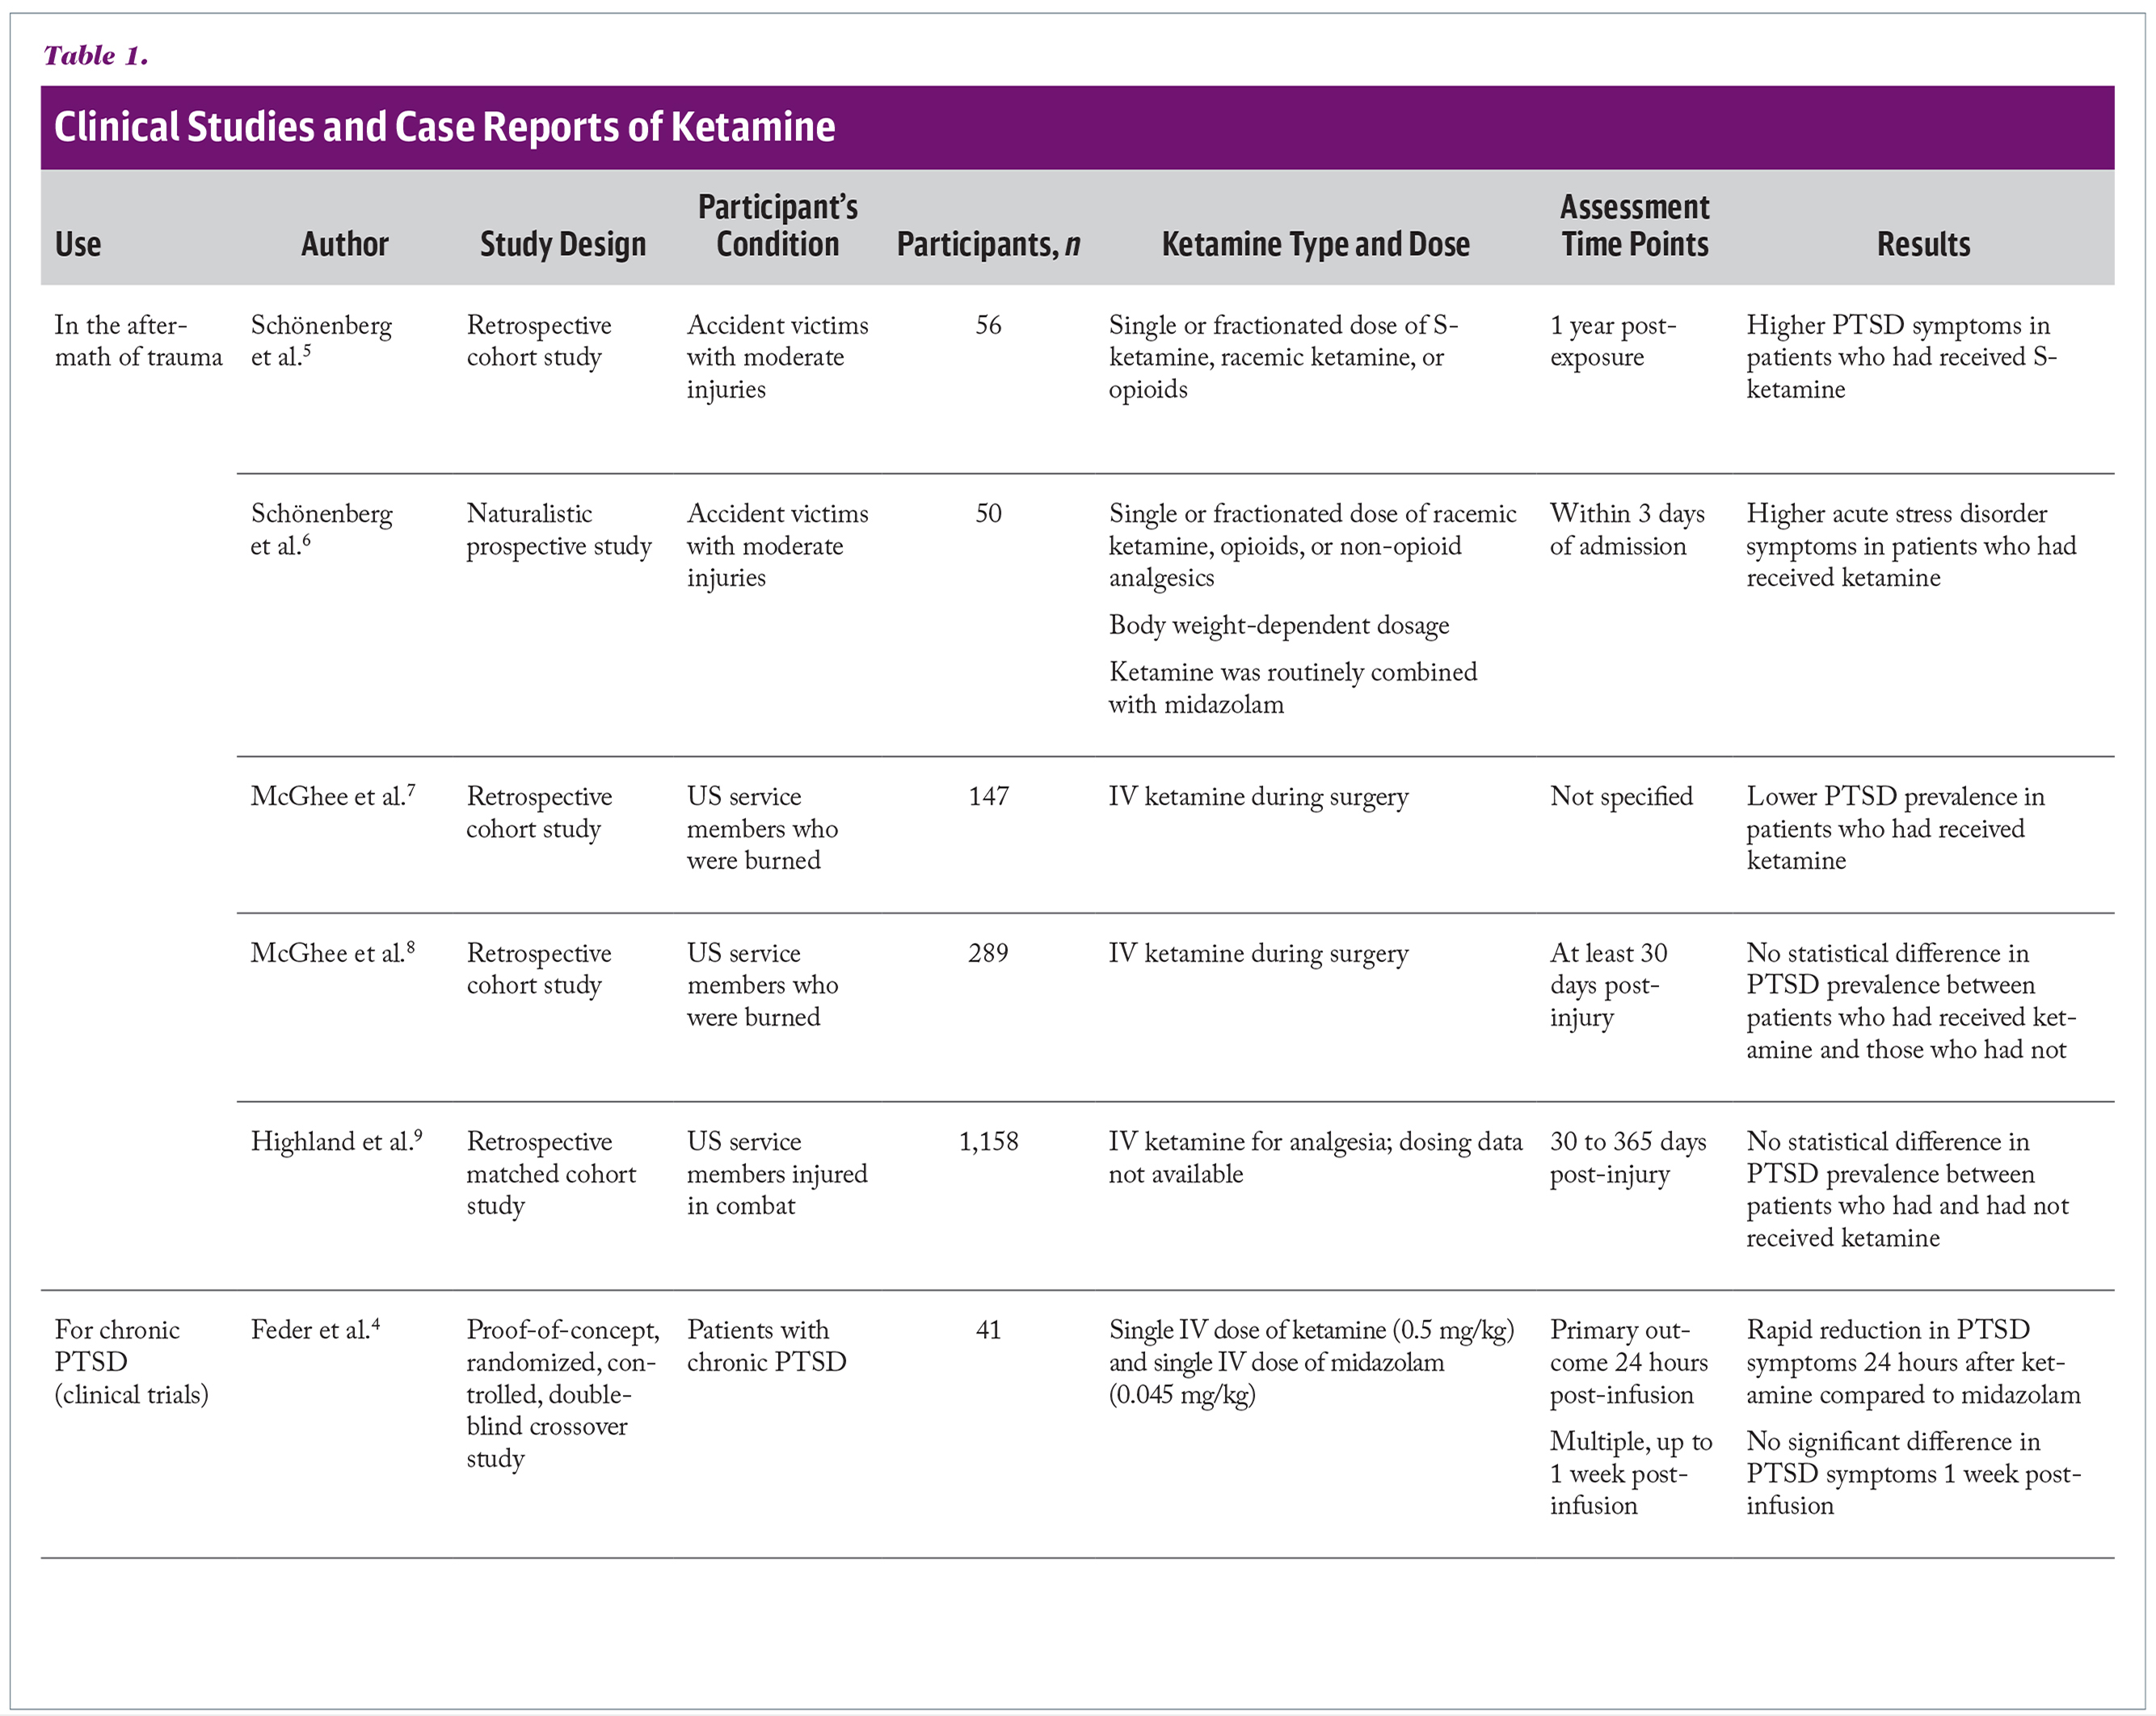 Clinical Studies and Case Reports of Ketamine